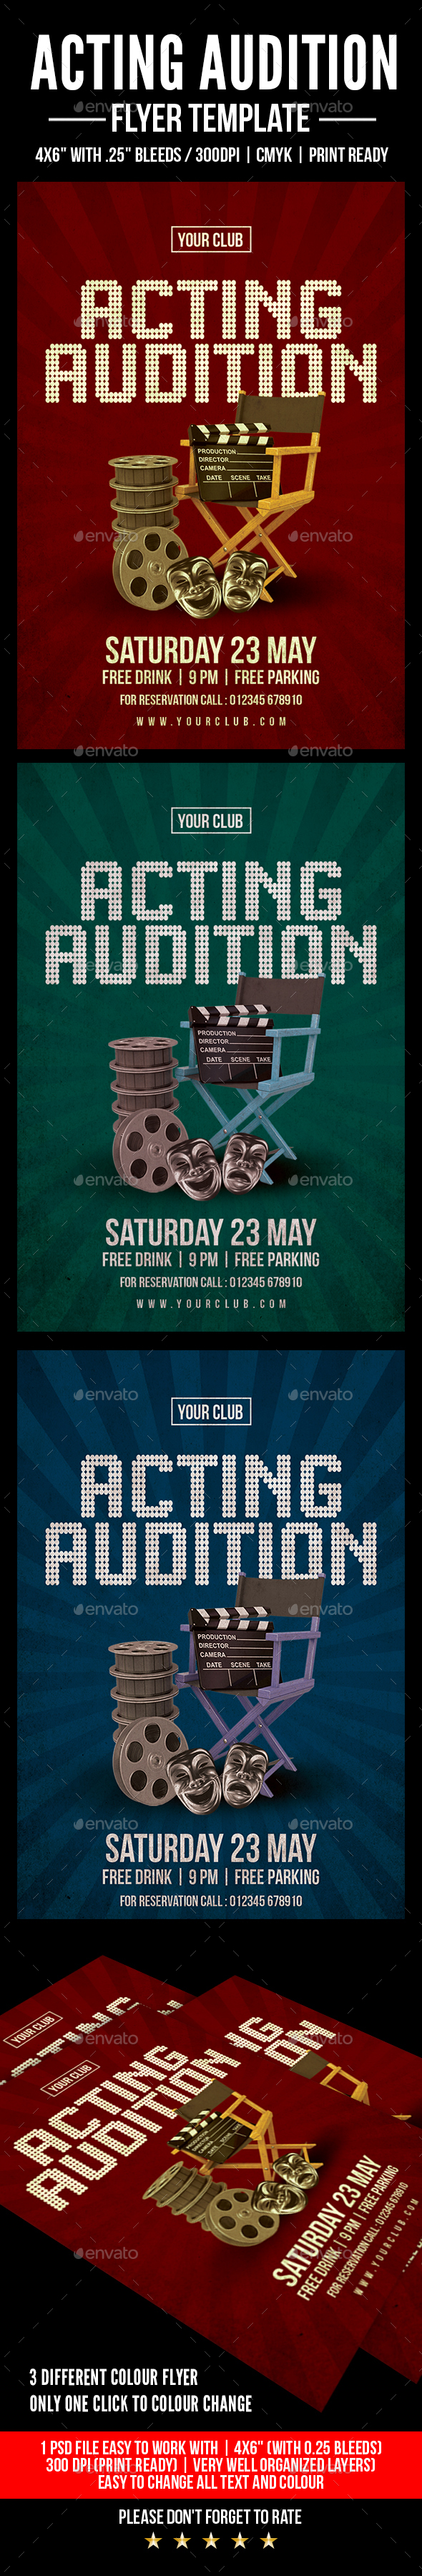 Acting Audition Flyer - Flyers Print Templates